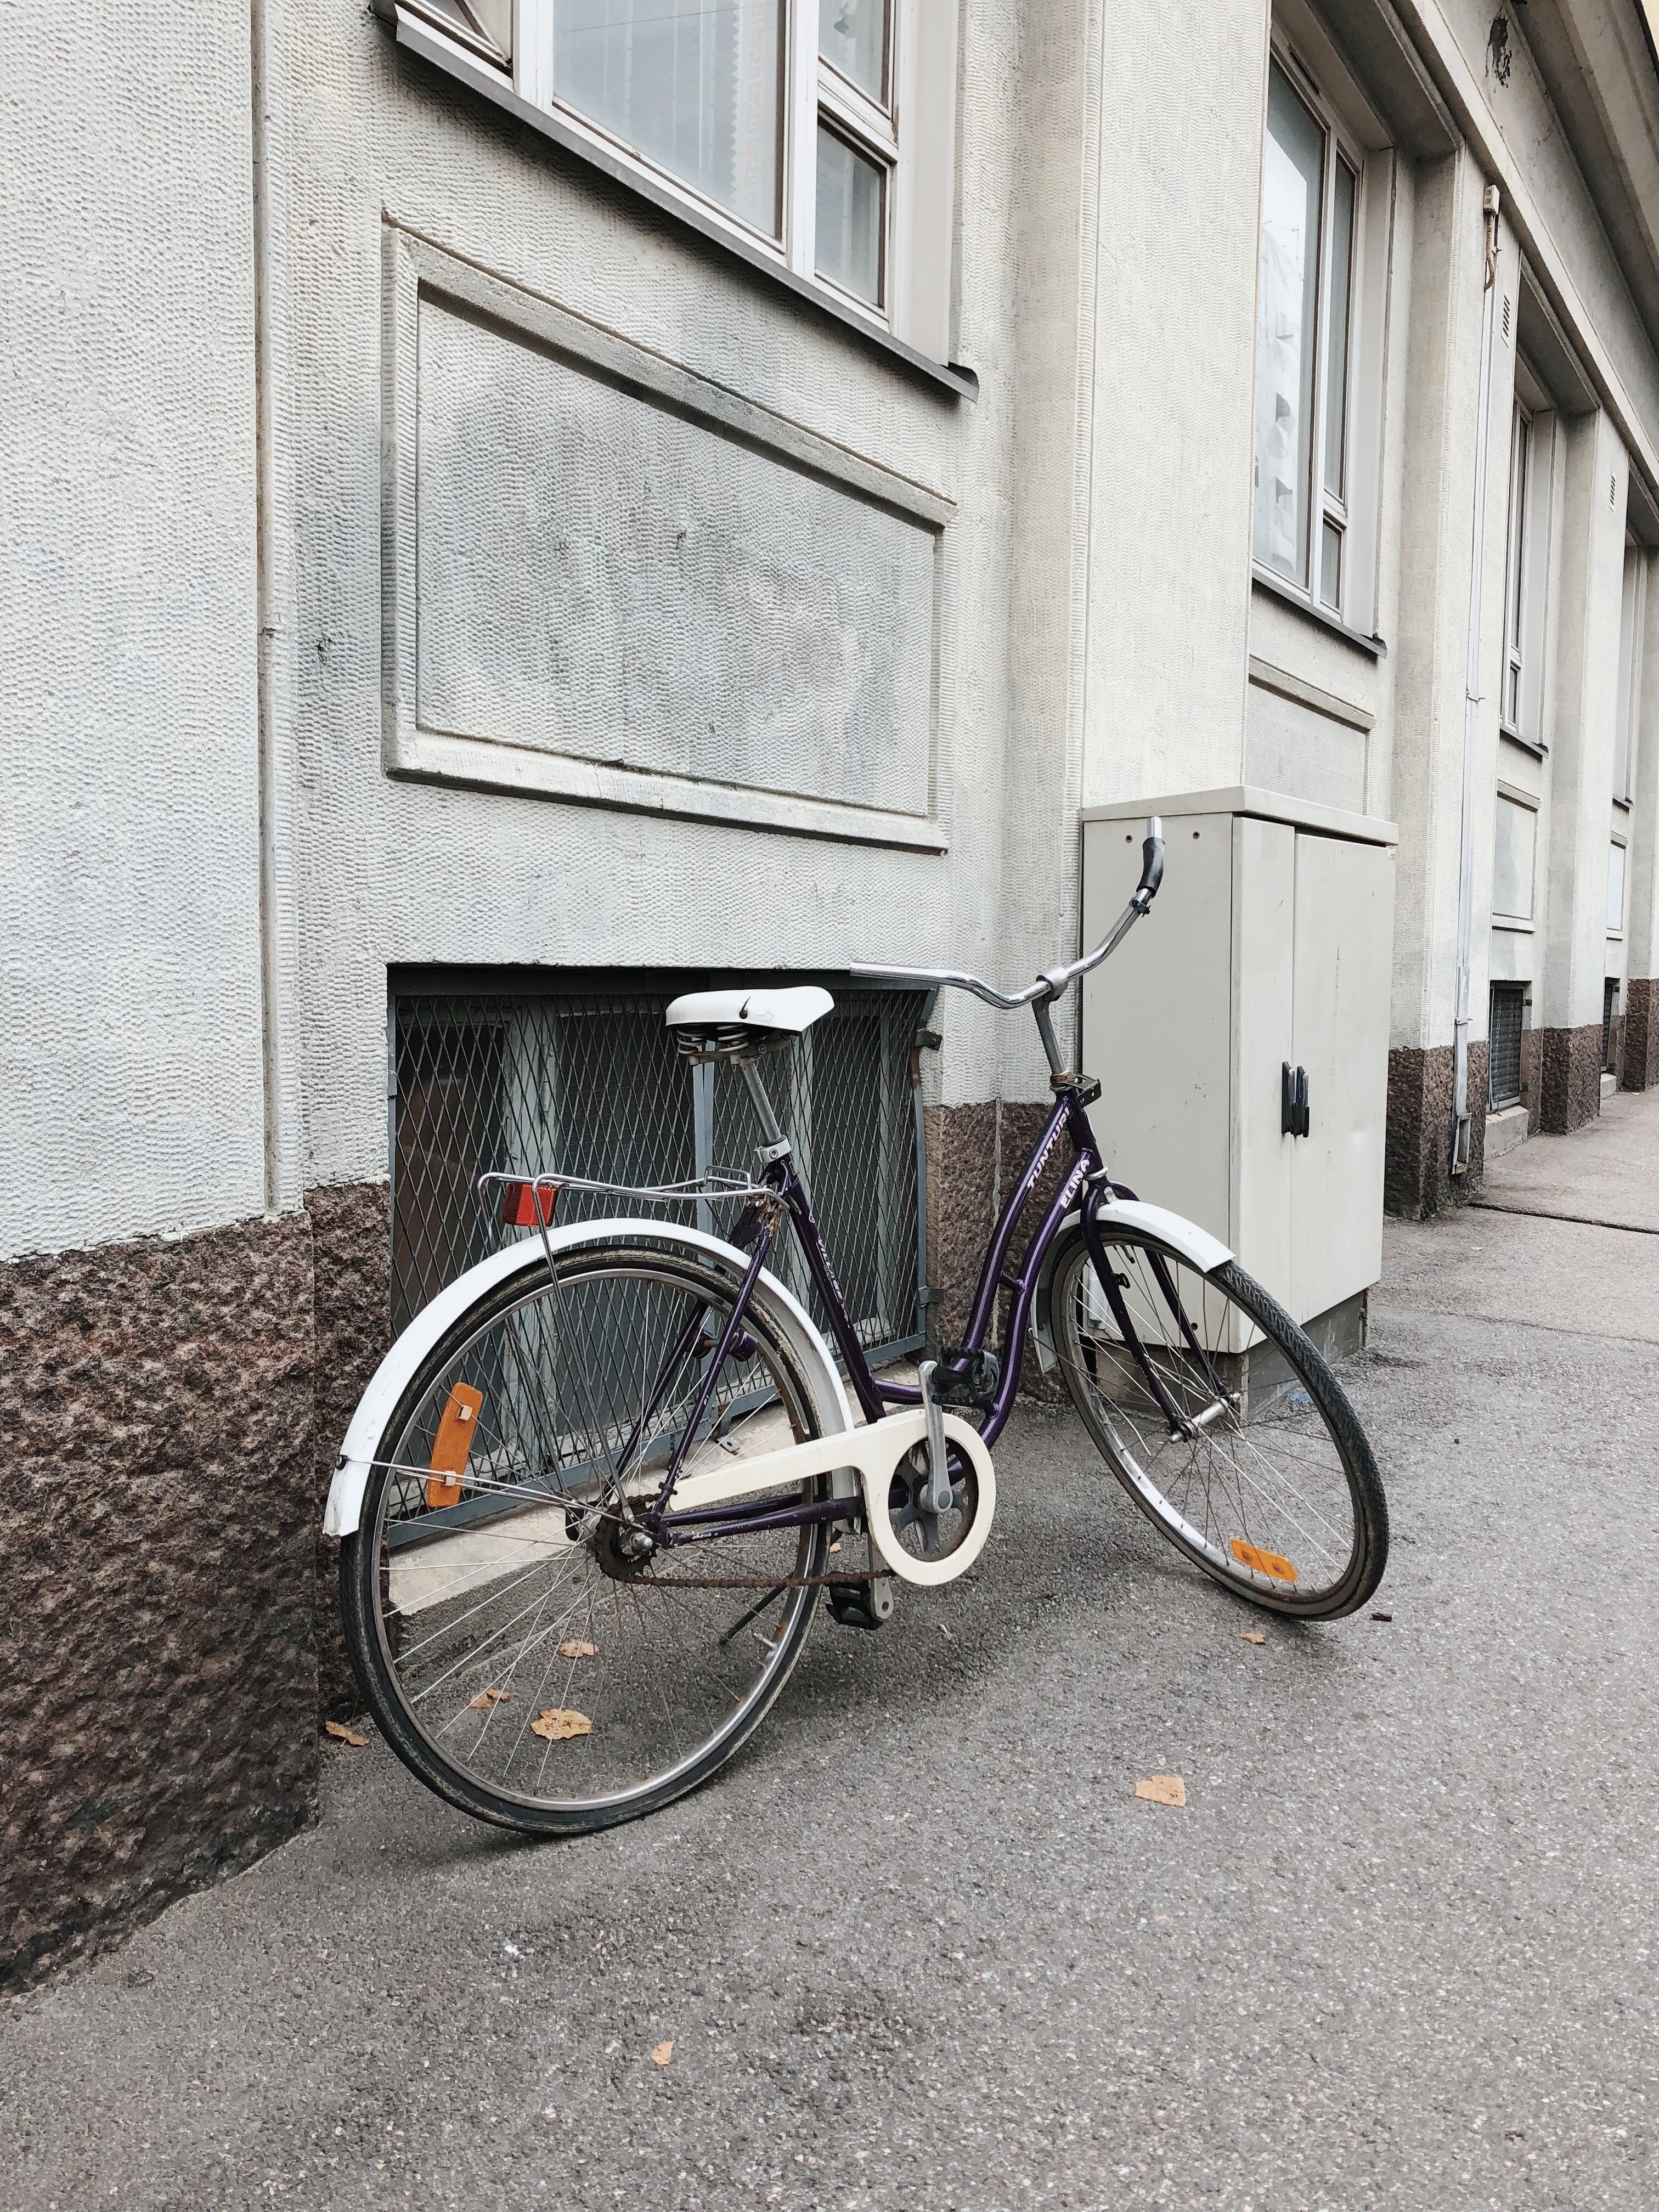 Photo of Bike Parked on Pavement